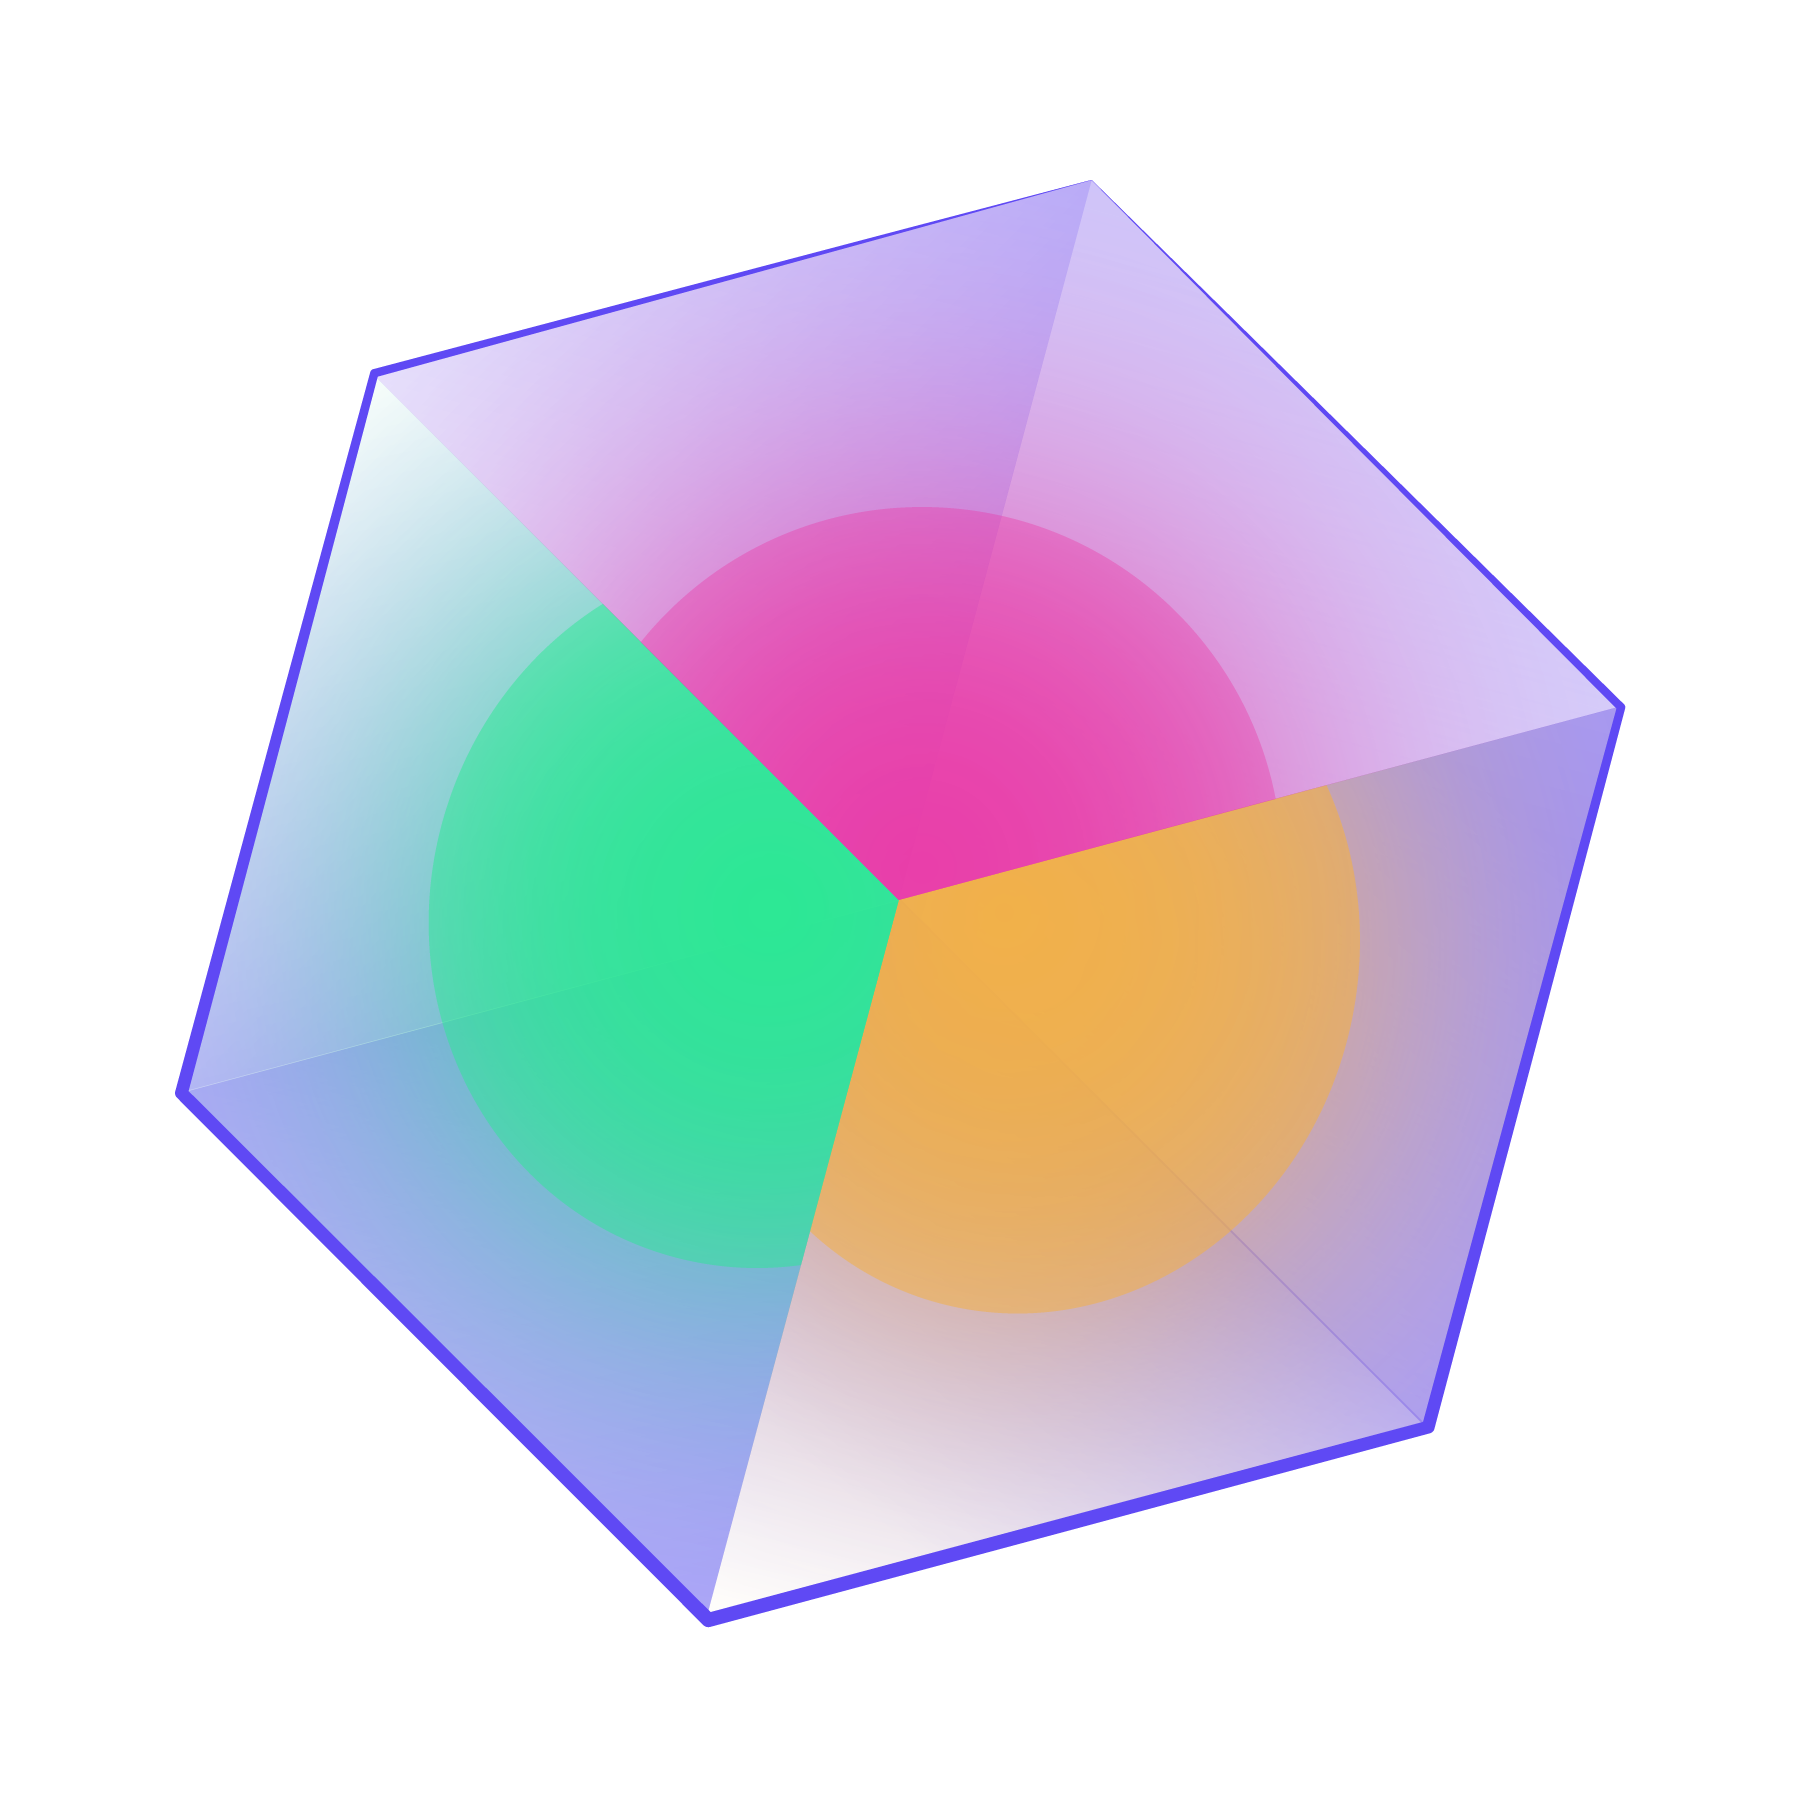 Fragmented cube